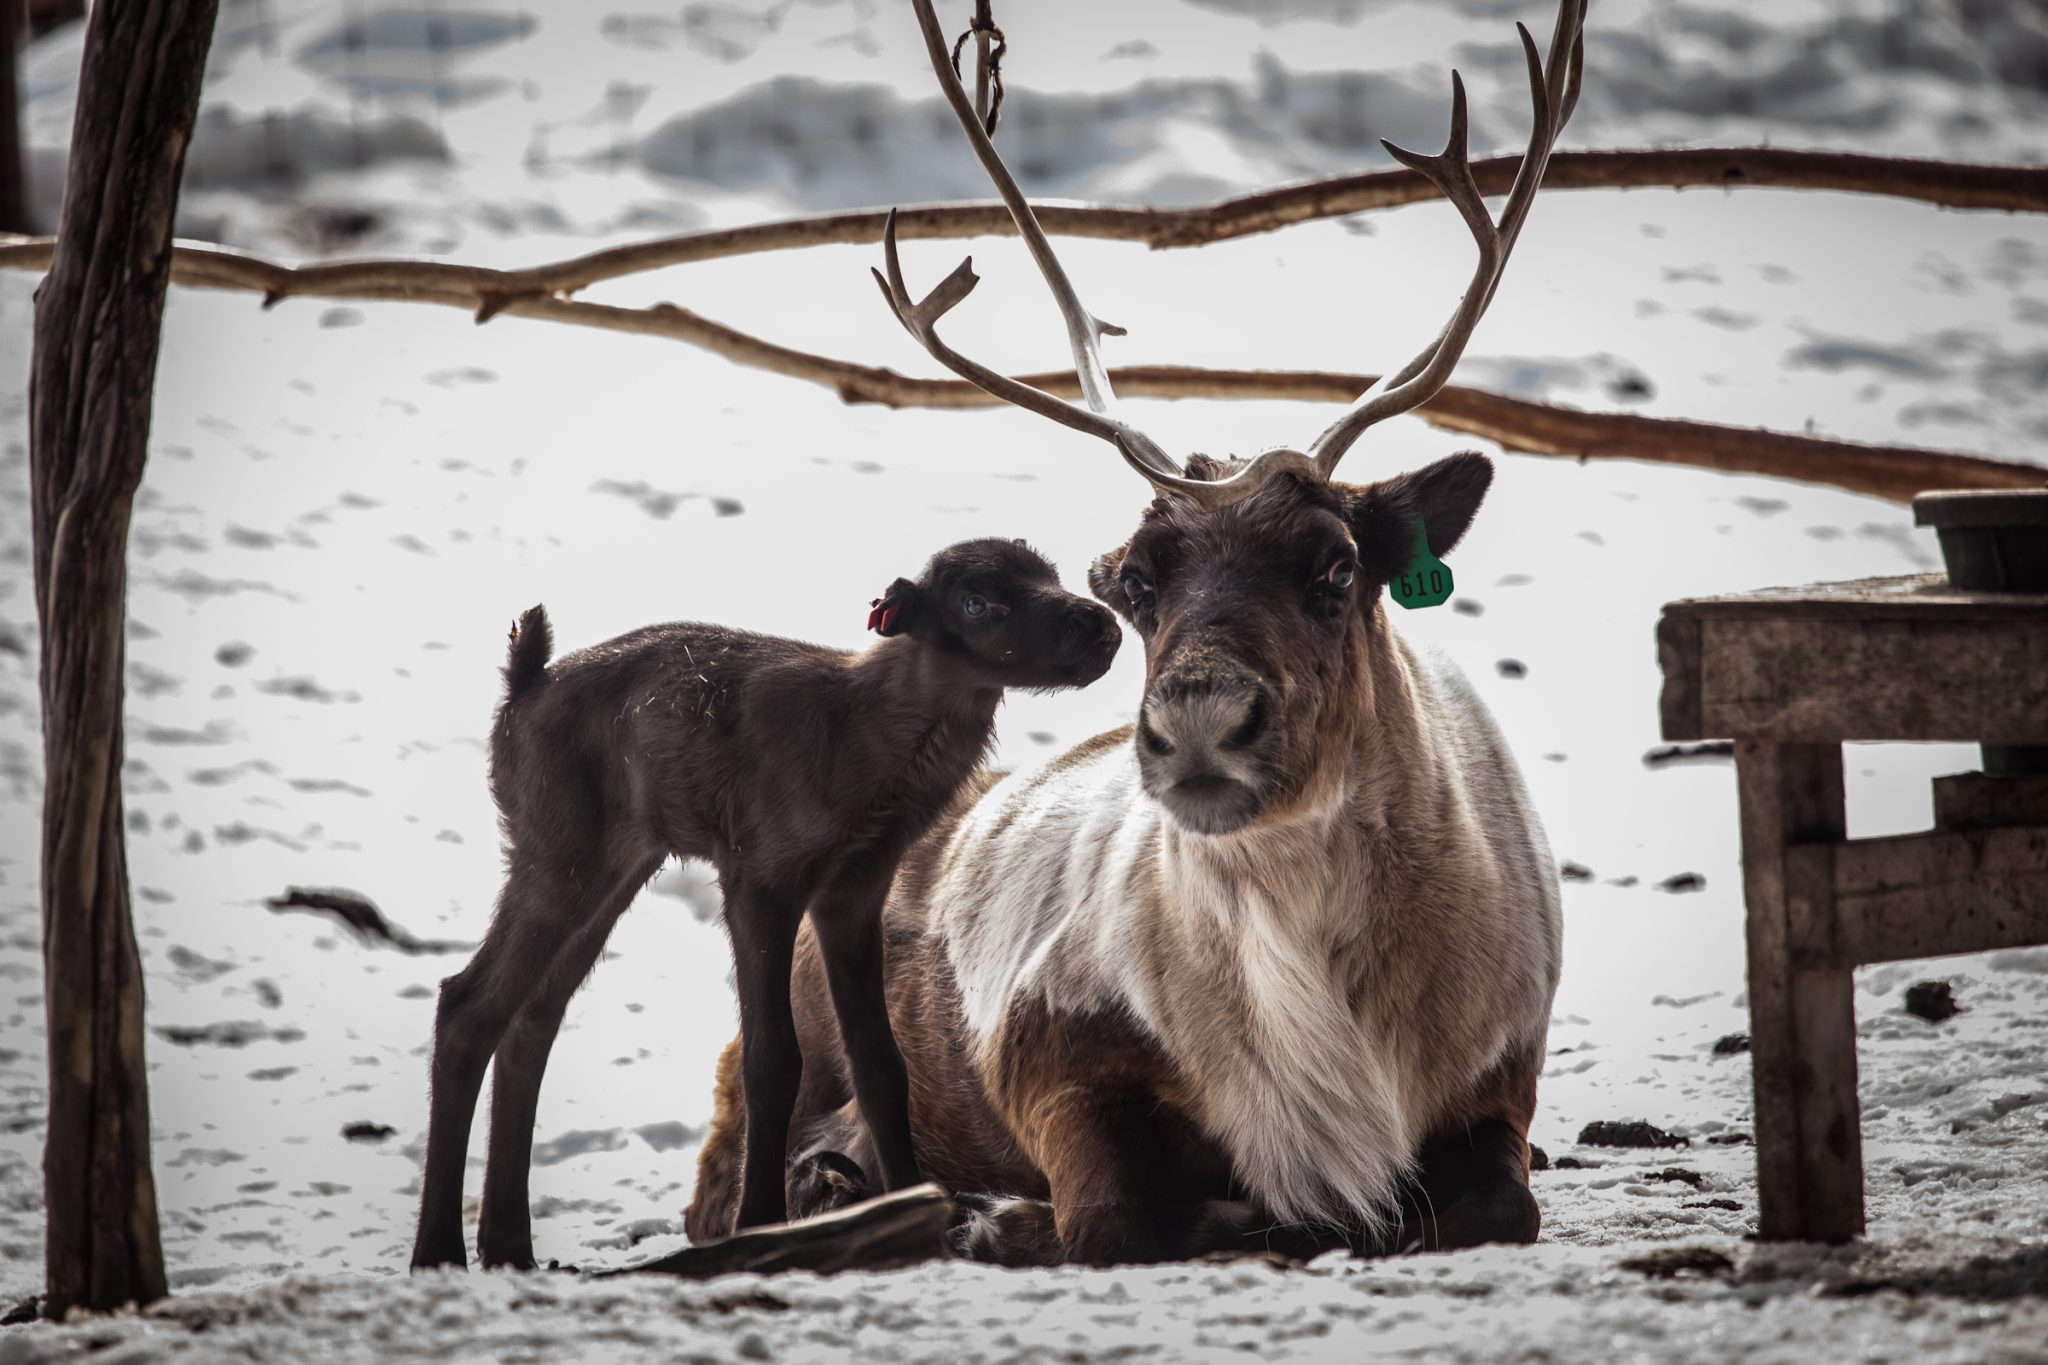 Midwife Ina May Gaskin points out that it's a good thing newborn reindeer have no horns (which would make it hard to nurse). Her point? Nature's designs work well, in animals AND in humans. Photo via University of Alaska Fairbanks.